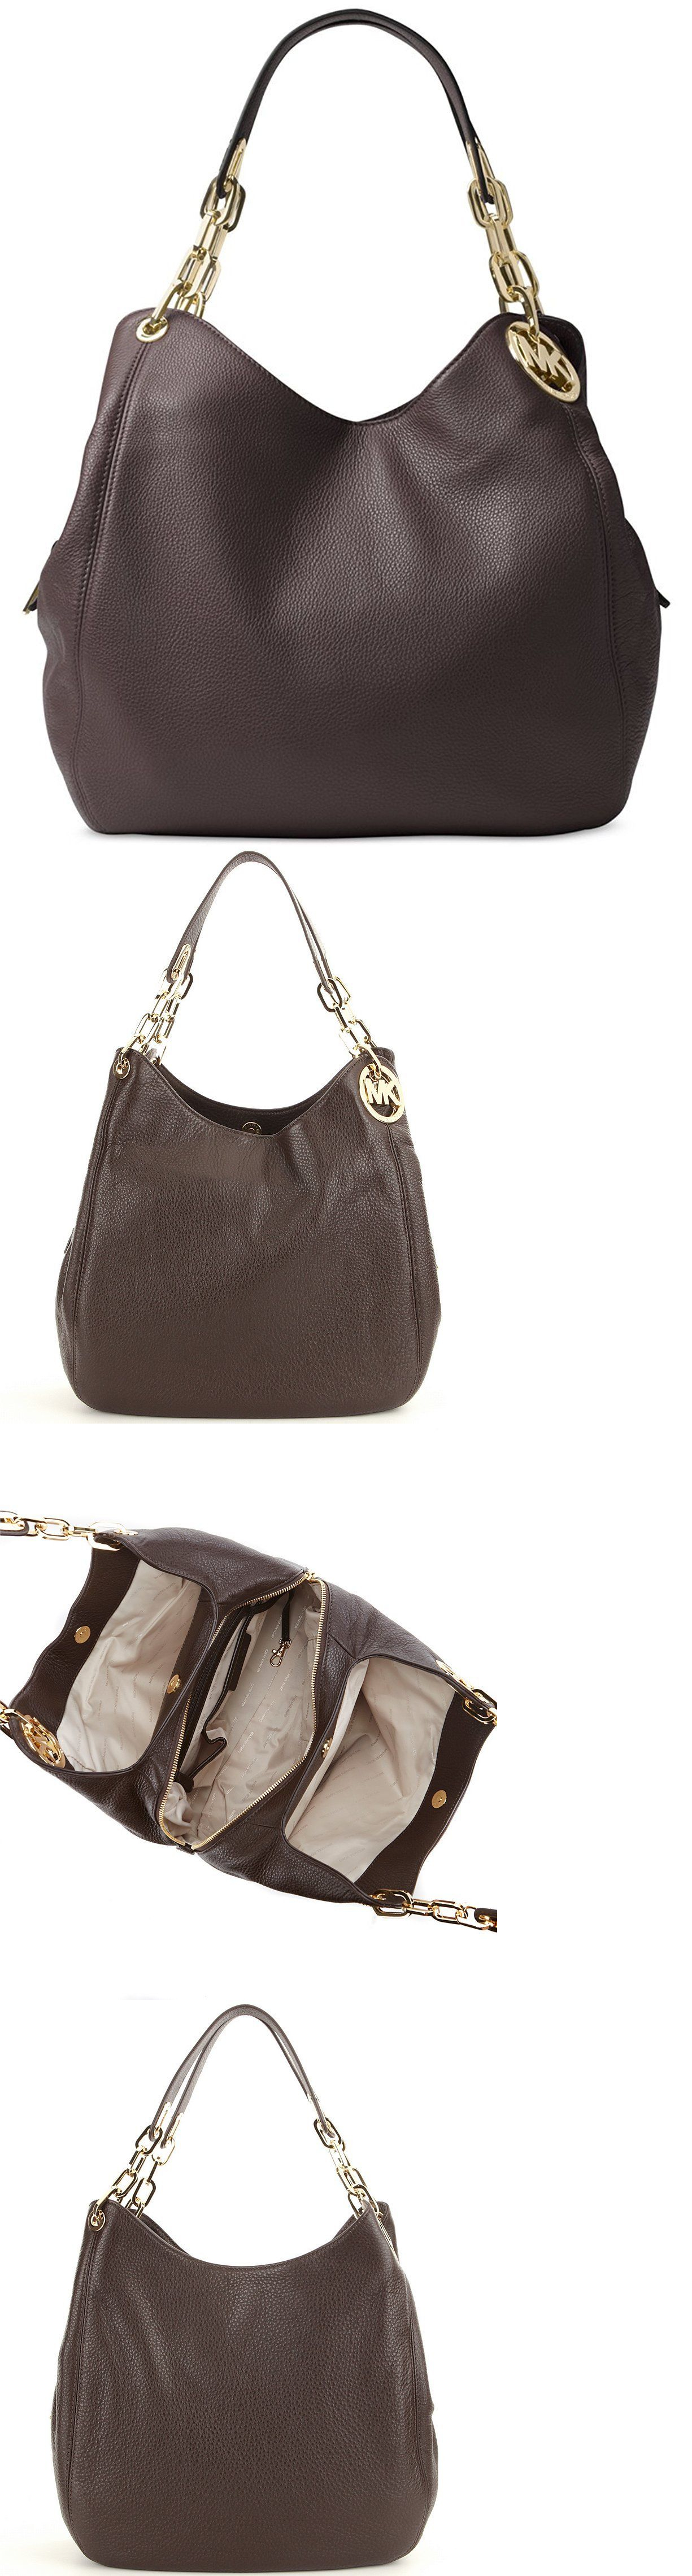 01b5f82b4376f9 Handbags and Purses 63852: Michael Kors Fulton Pebbled Leather Large  Shoulder Tote Bag (Coffee) -> BUY IT NOW ONLY: $299.99 on eBay!